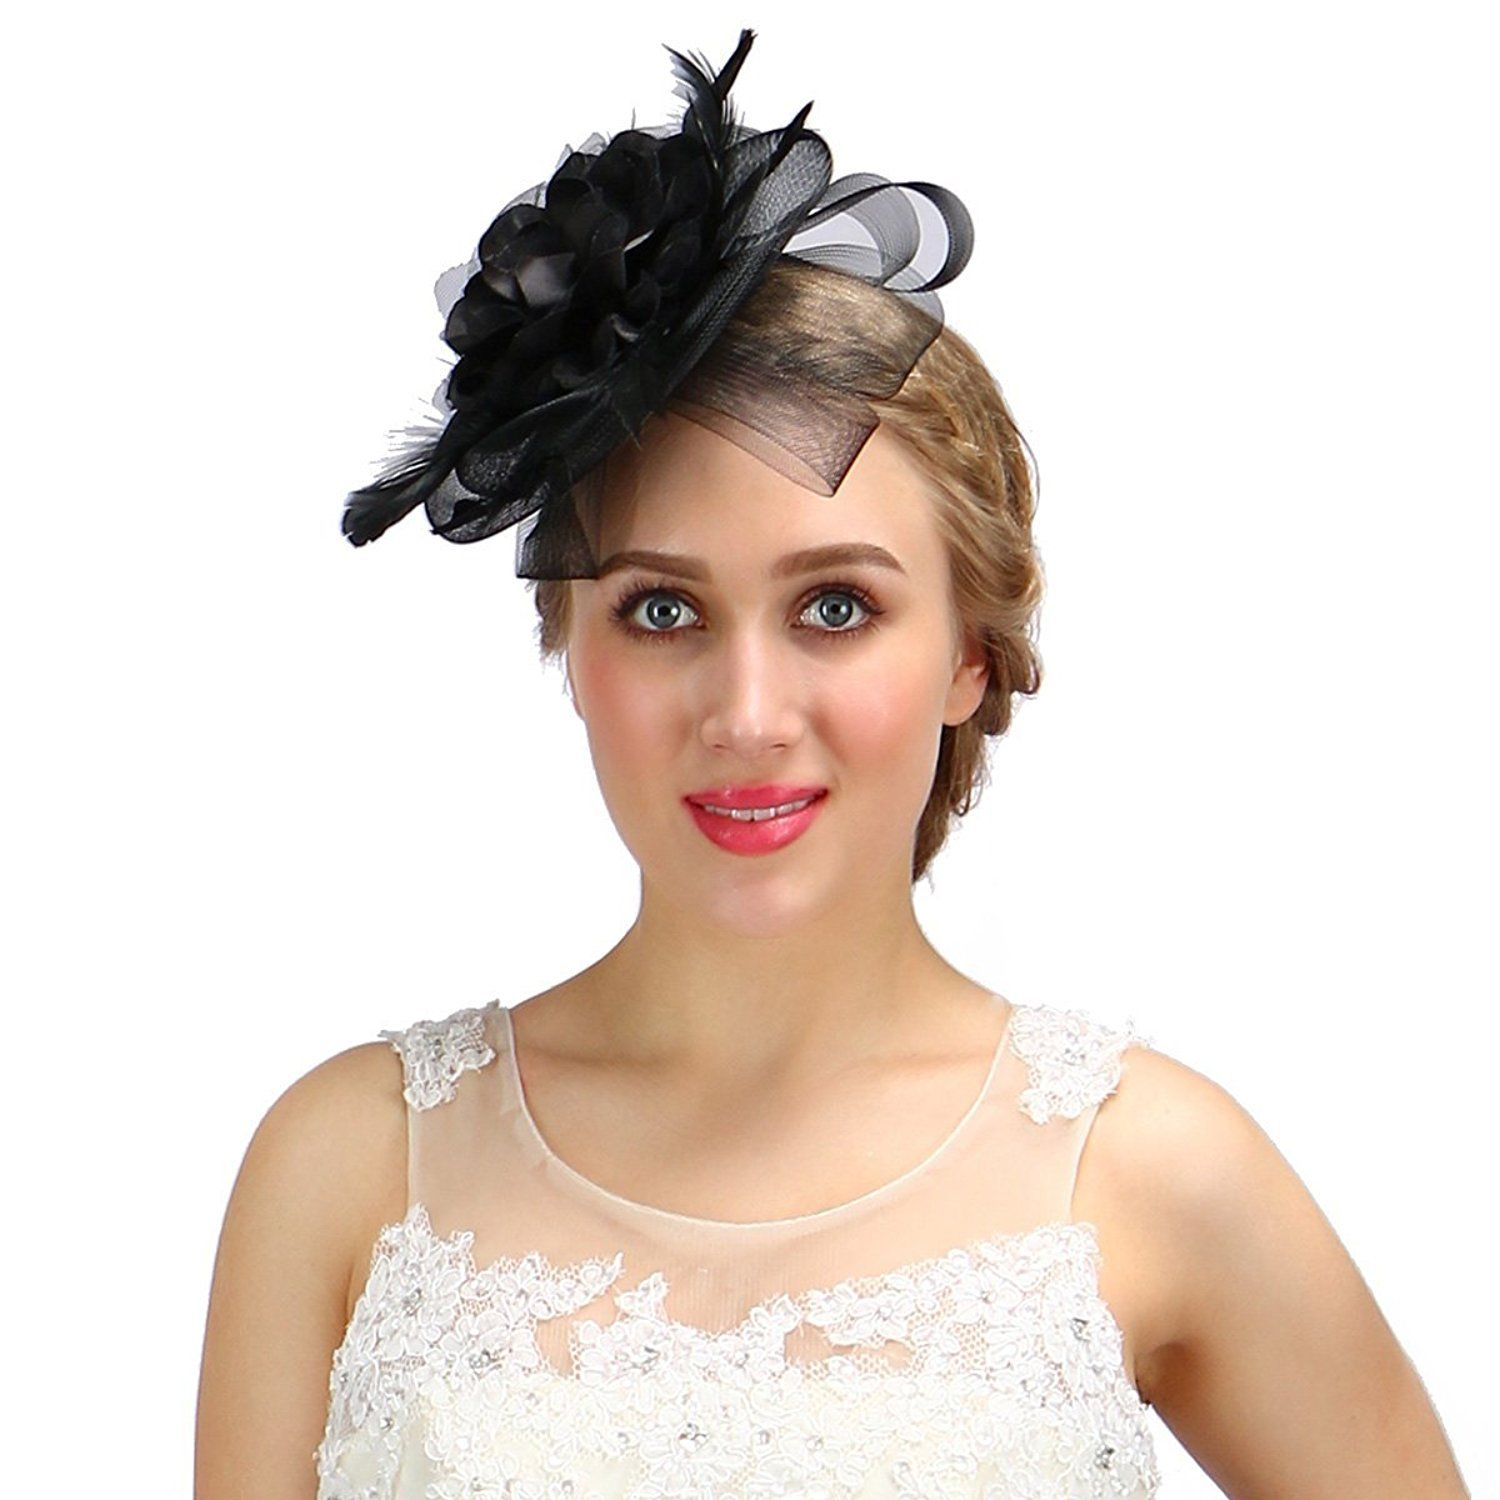 Valdler Women Elegant Cocktail Fascinator Hat For Party